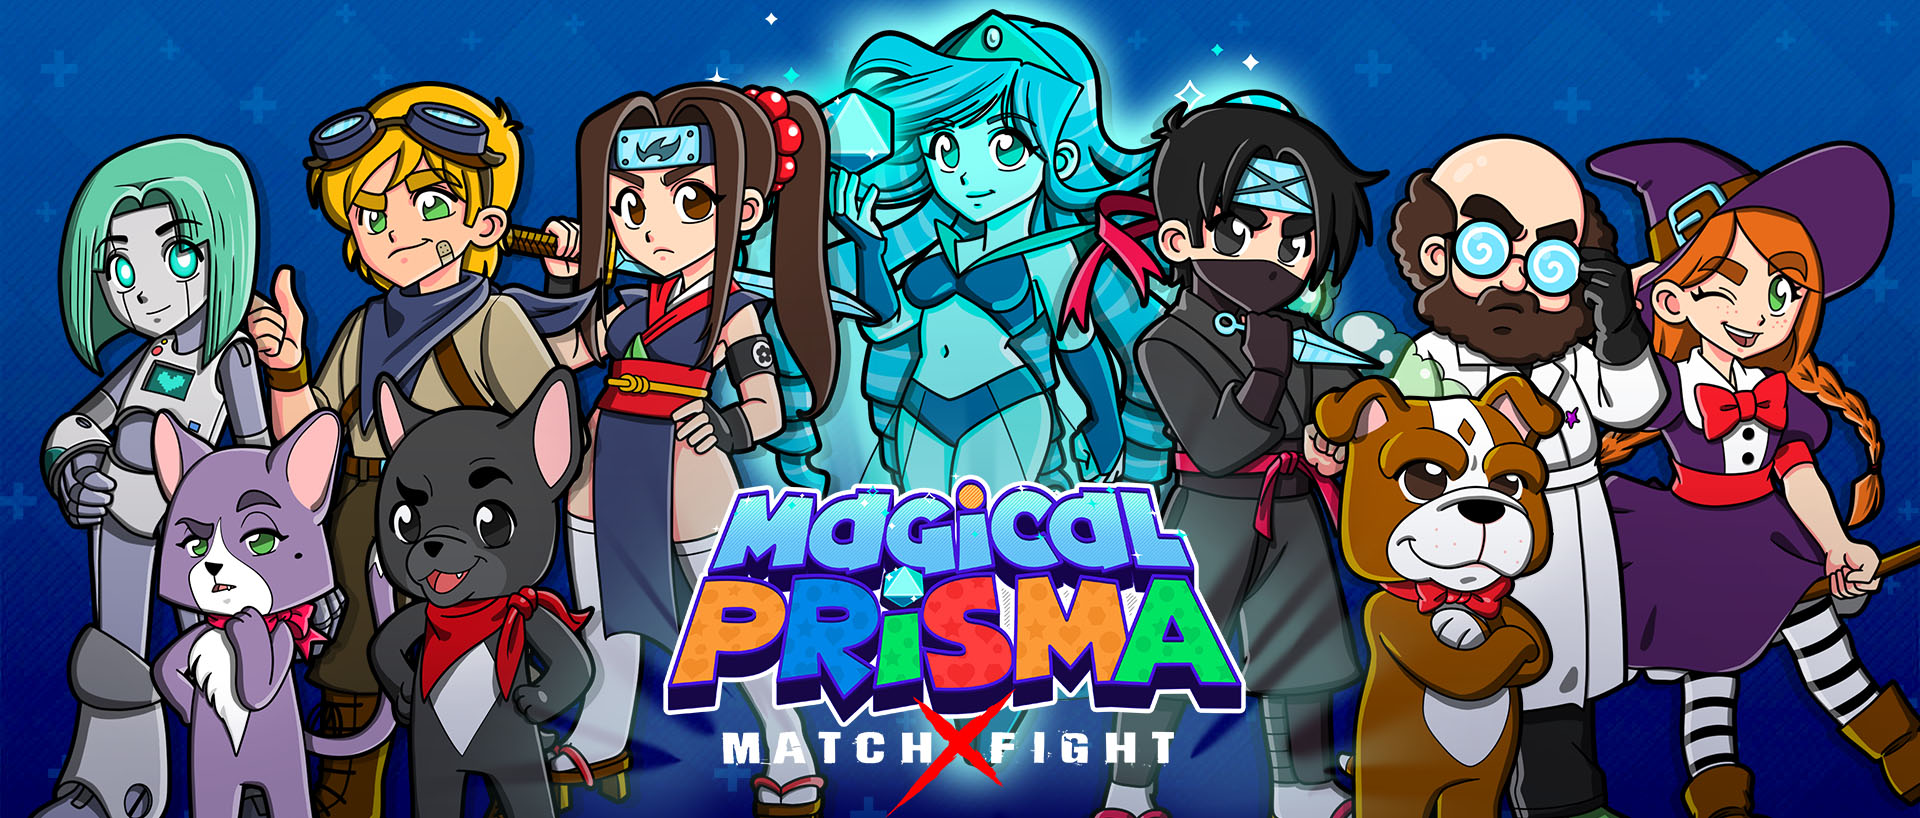 Magical Prisma Demo